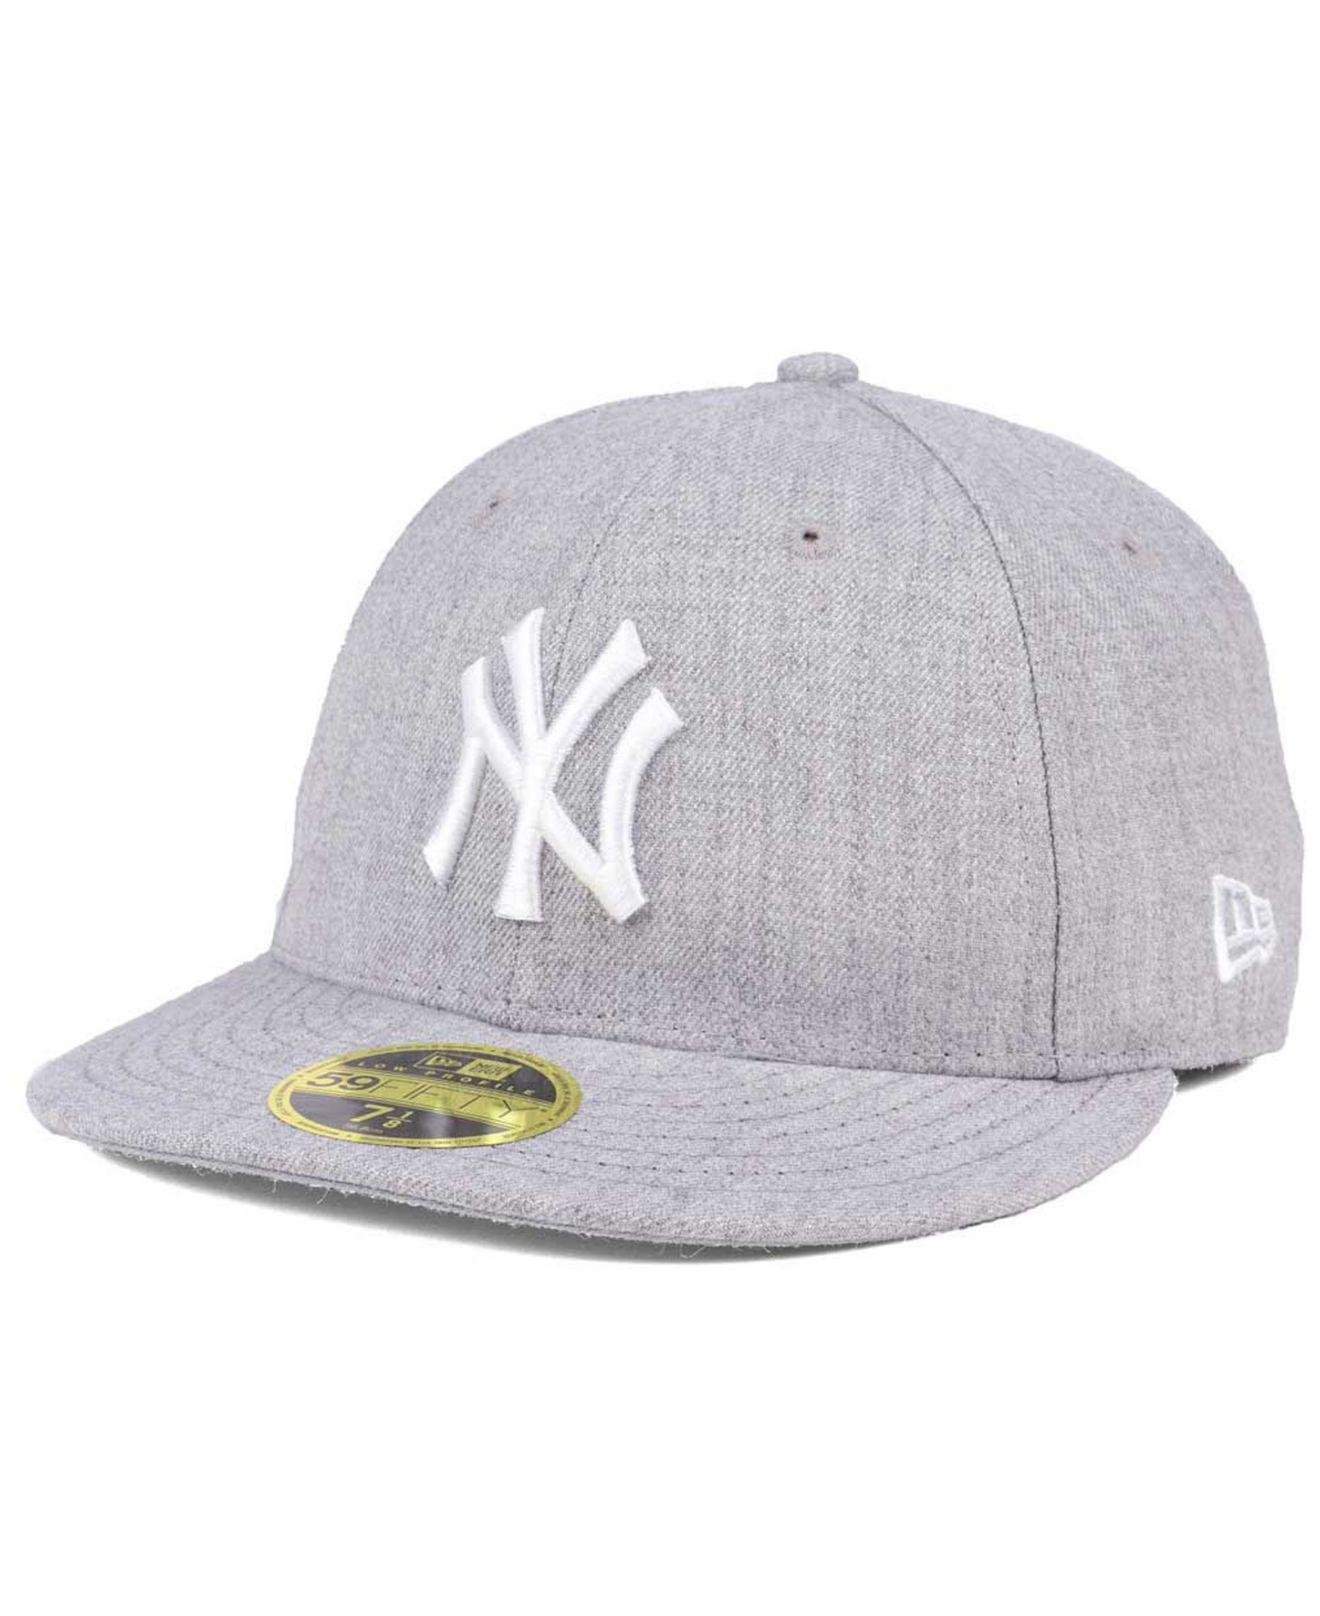 the best attitude b6474 cc8de Lyst - KTZ New York Yankees Low Profile C-dub 59fifty Fitted Cap in ...